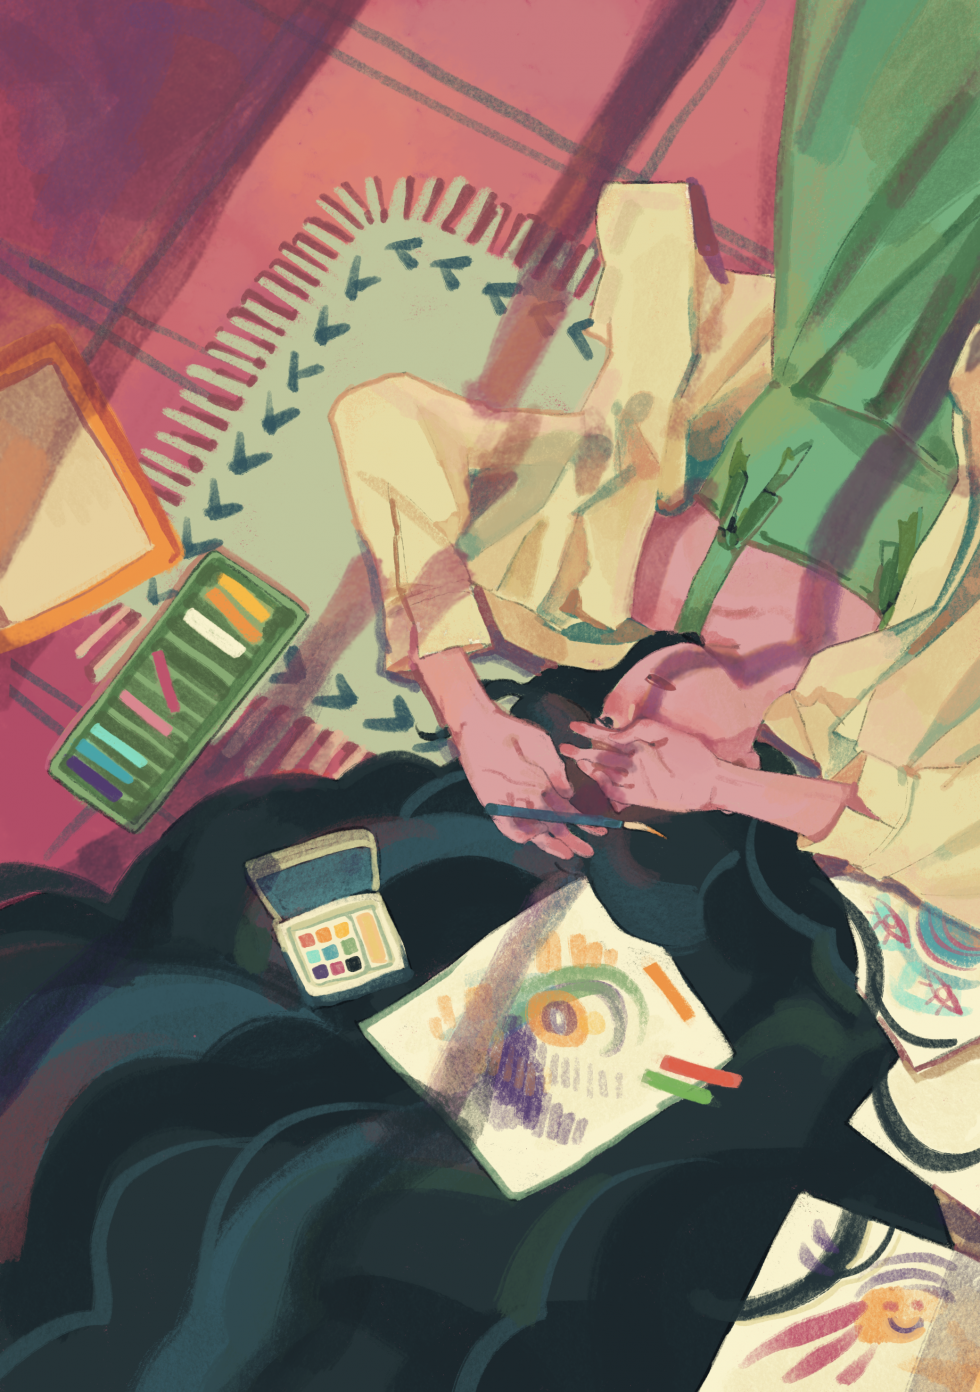 Digital Illustration about a girl having artist block laying on ground/